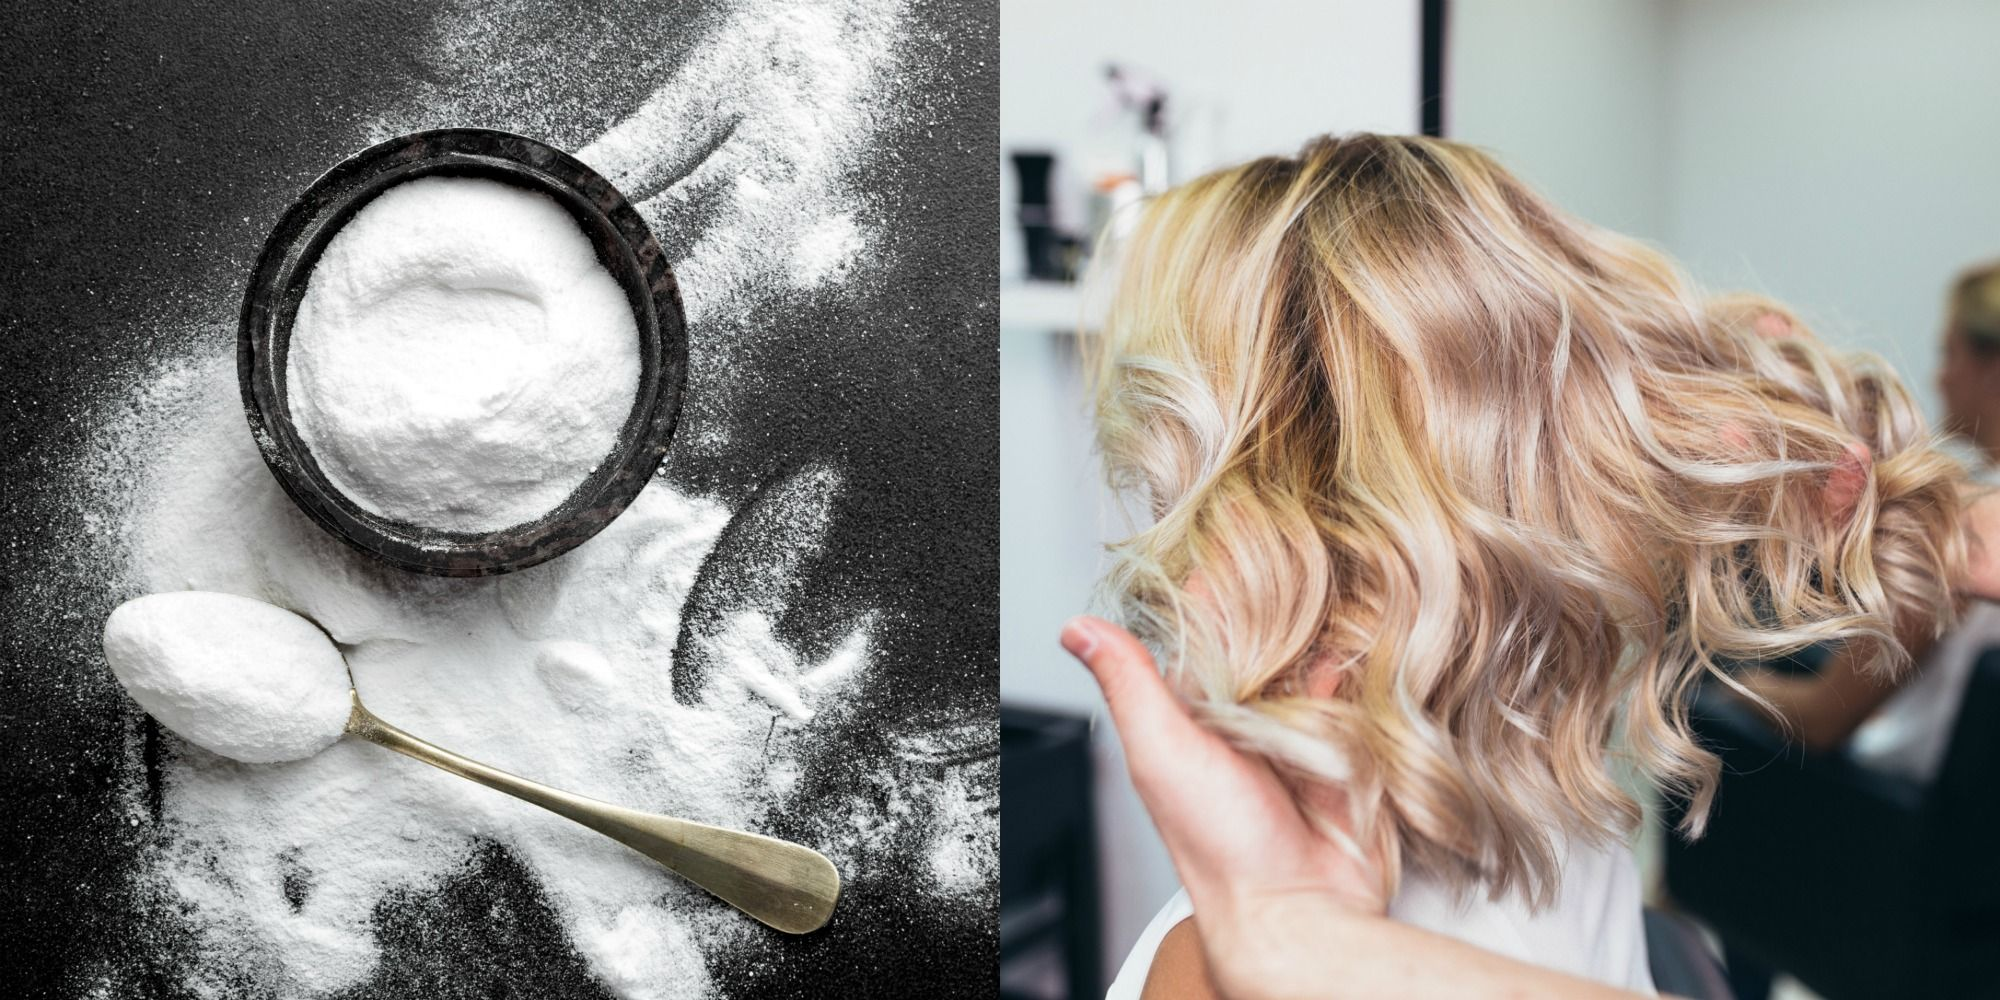 Does Baking Soda Actually Work As a Natural Way to Shampoo Your Hair?